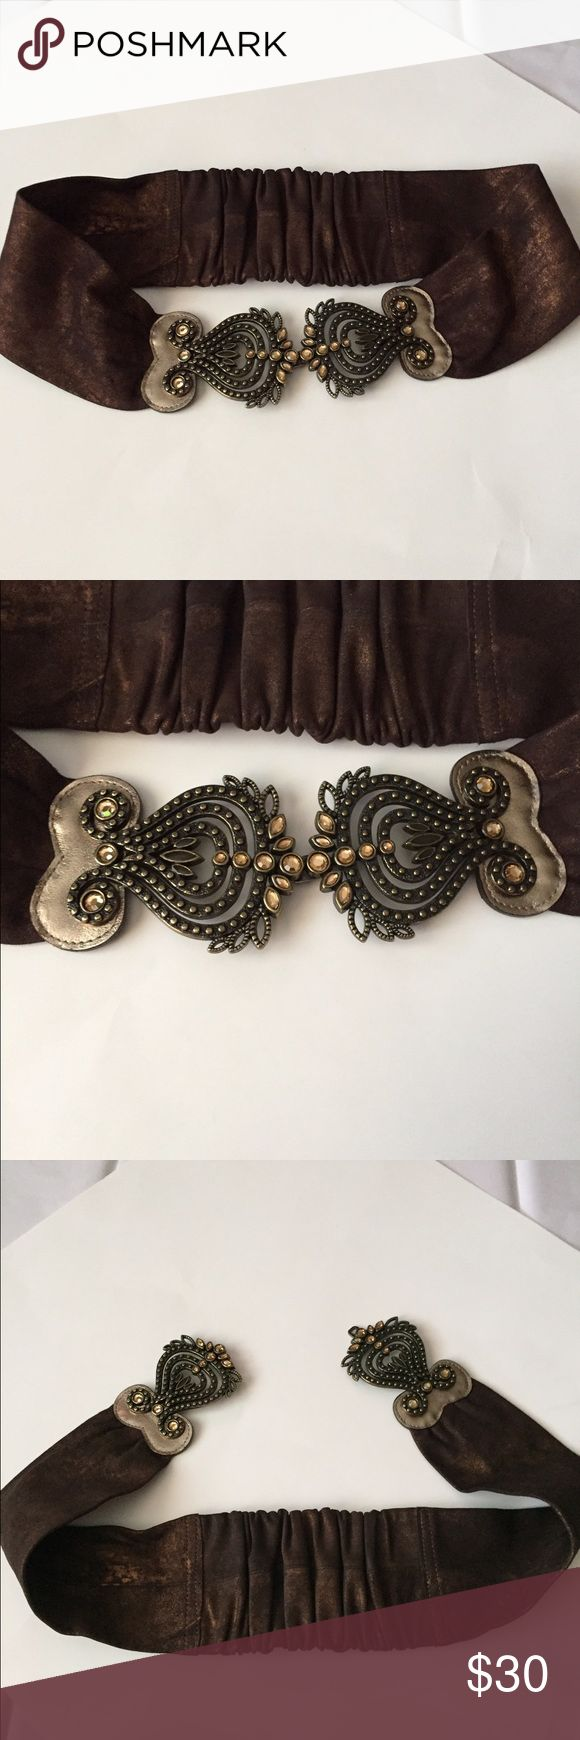 Chico's Stretch Rhinestone Belt! Chico's brown leather with gold sheen belt! Large rhinestone buckle! New without tags! Stretchy in the back for a perfect fit! Very Chic! 35.5 inches long. Width 4 inches. This is a M/L. Please refer to measurements. Chico's Accessories Belts